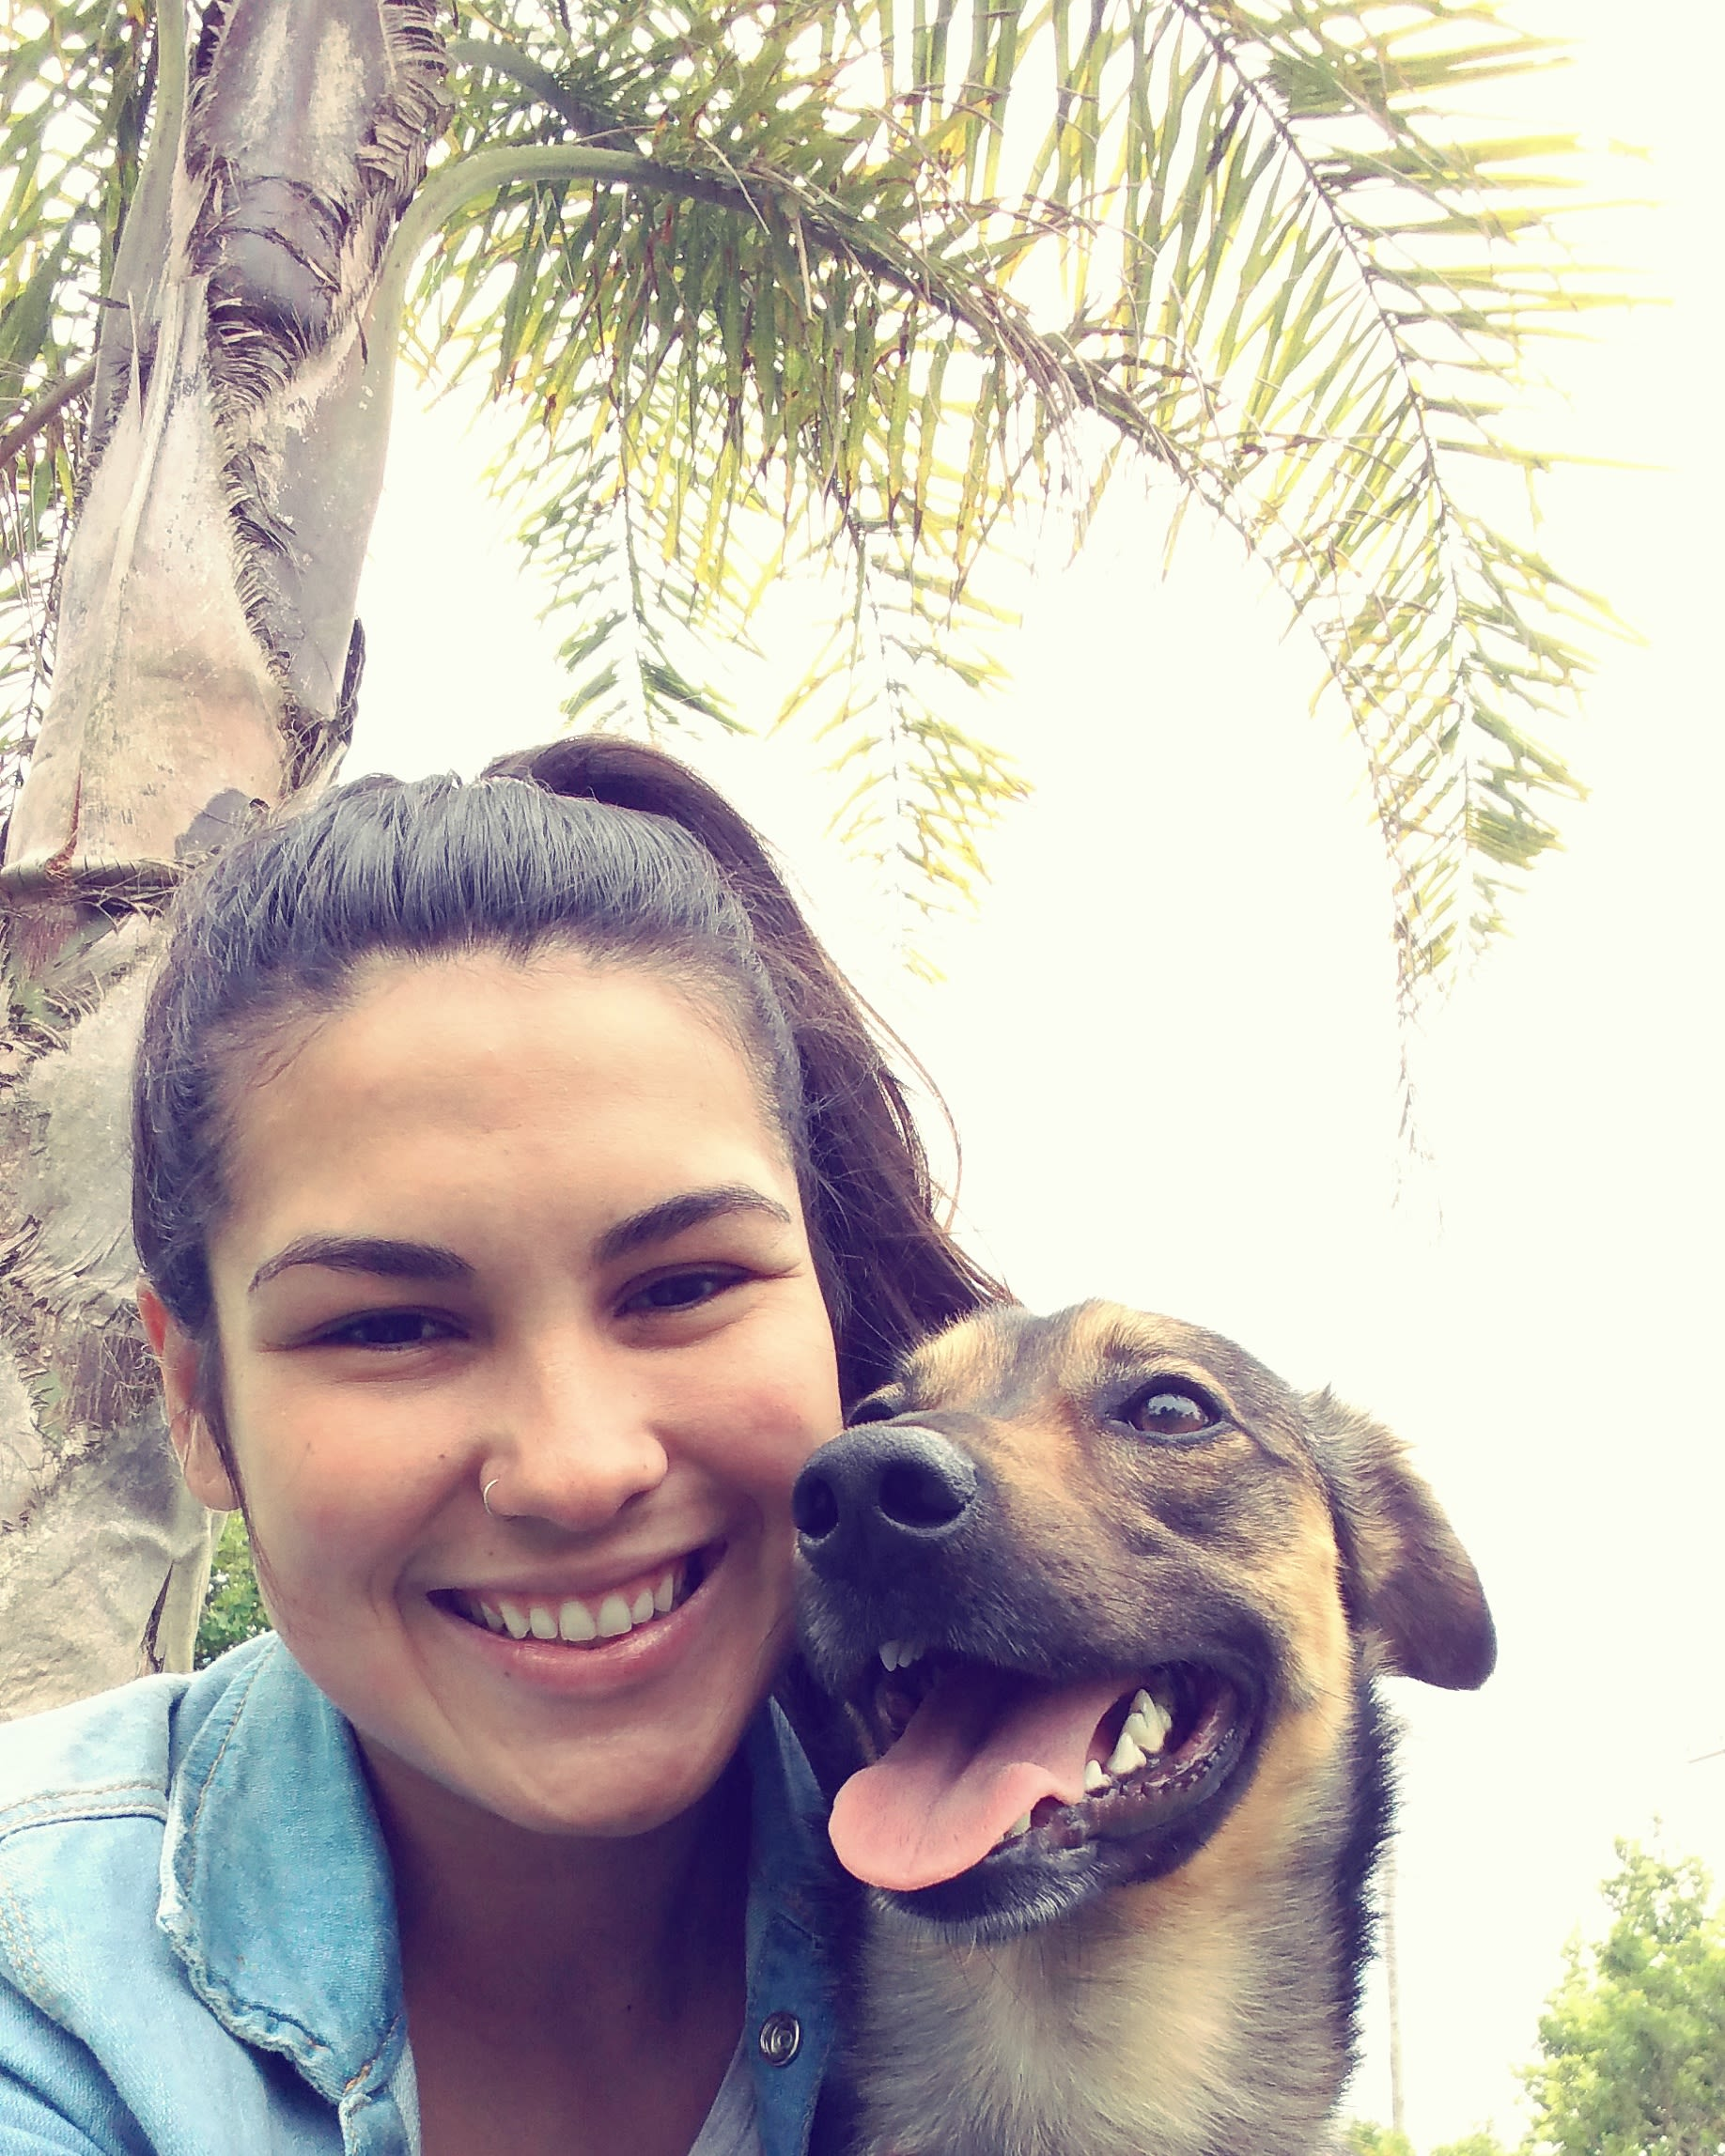 In love with dogs!